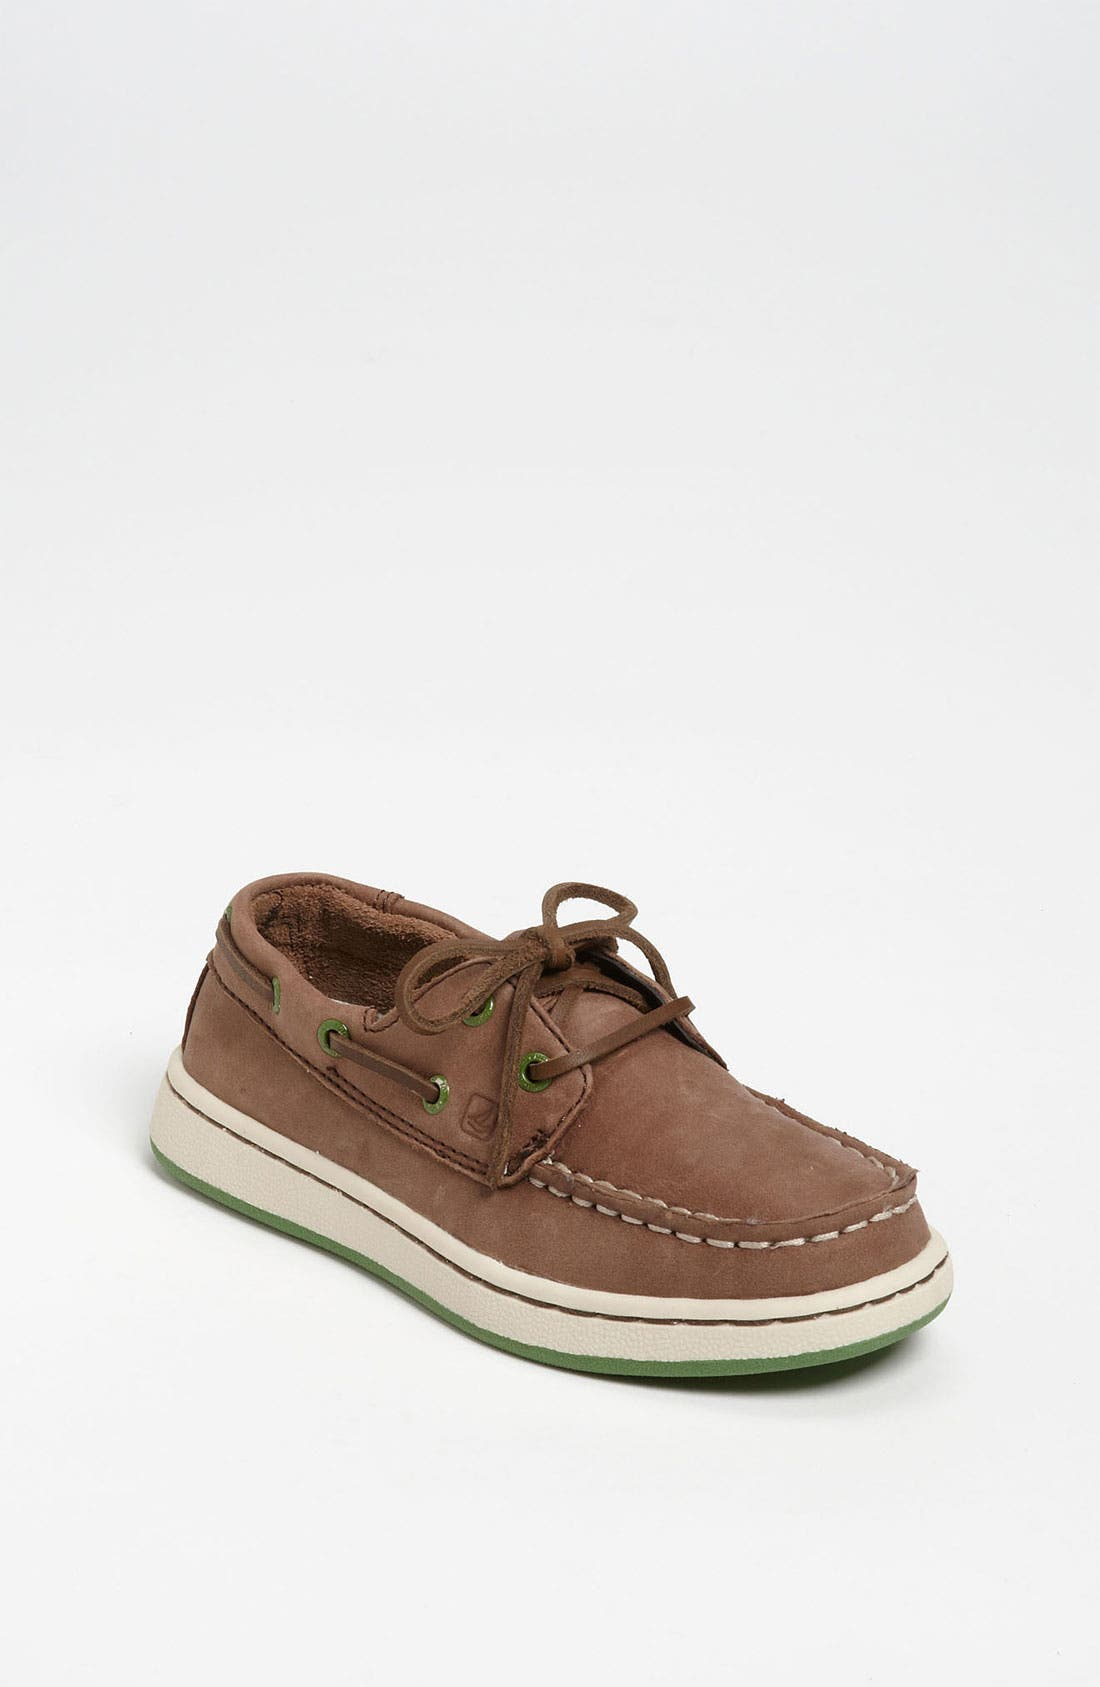 Alternate Image 1 Selected - Sperry Top-Sider® Kids 'Cupsole' Loafer (Toddler)